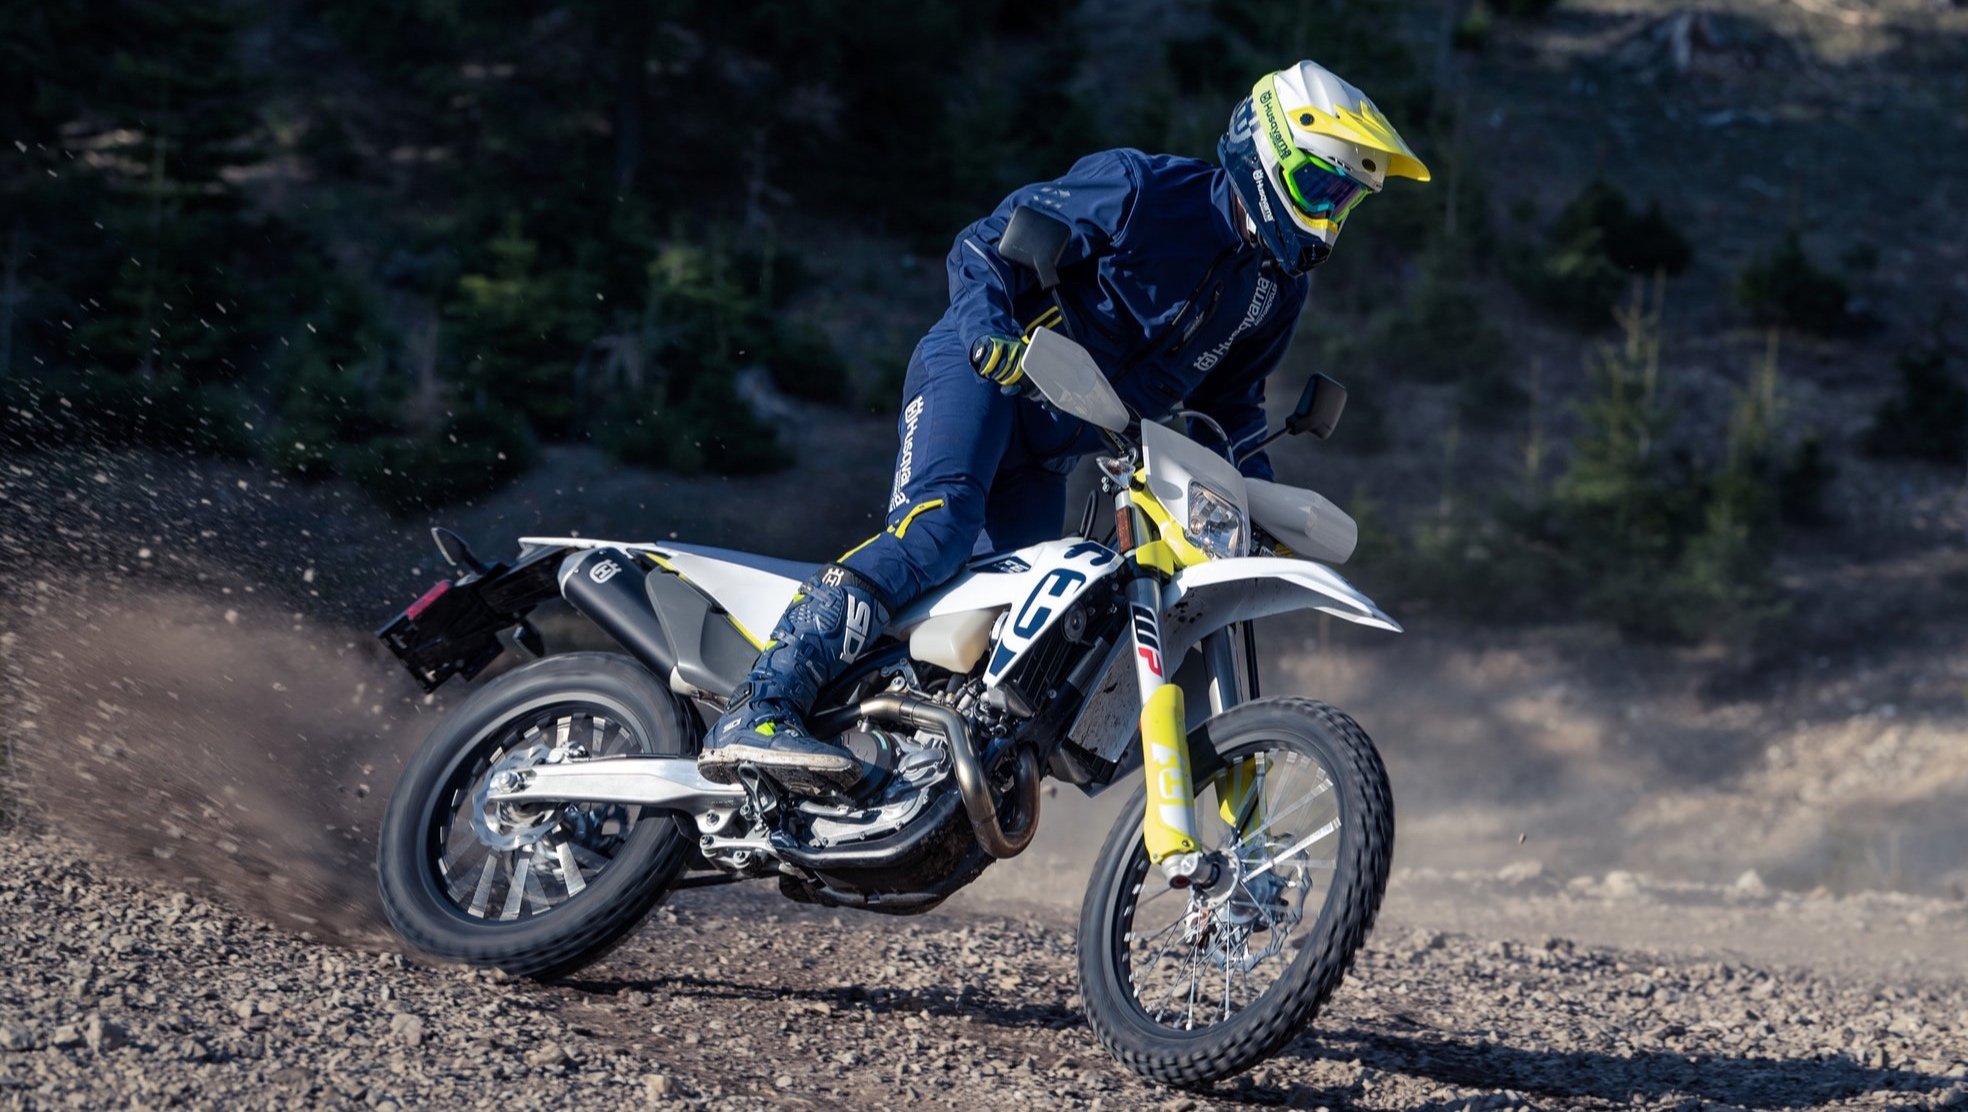 06102019-2020-Husqvarna-dual-sport-and-off-road-2020-7.jpg